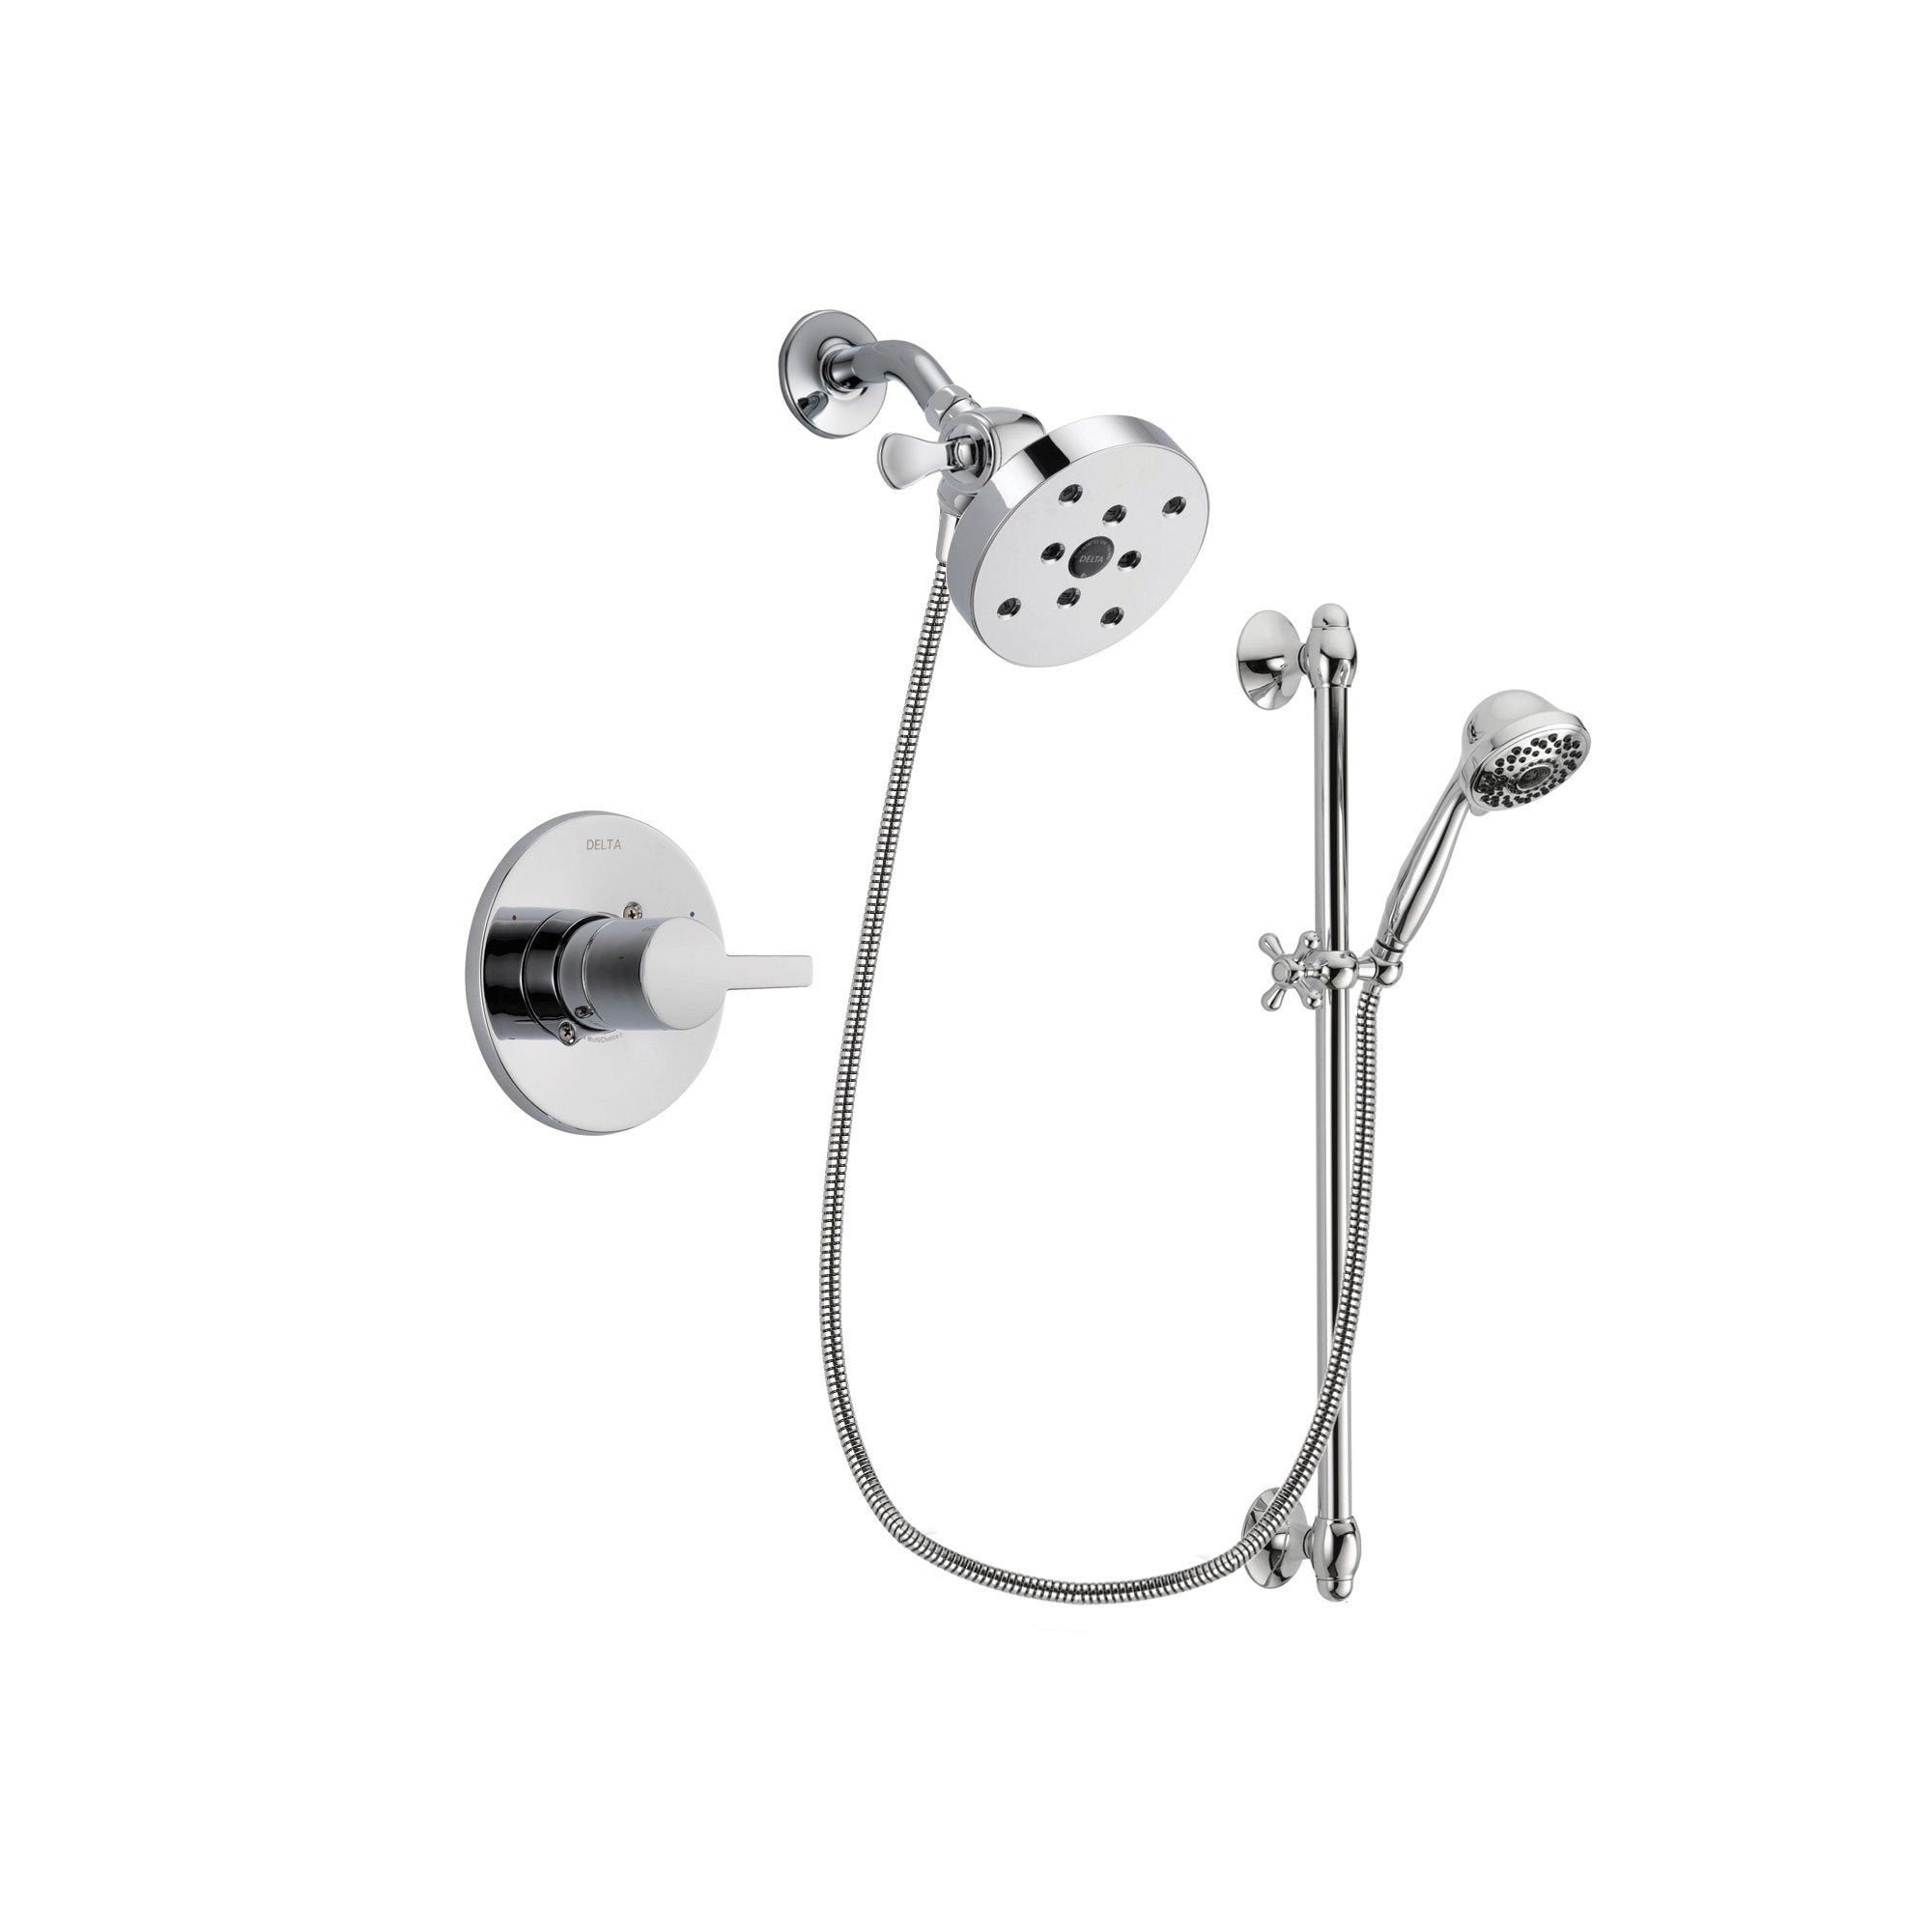 Delta Compel Chrome Shower Faucet System w/ Shower Head and Hand Shower DSP0678V